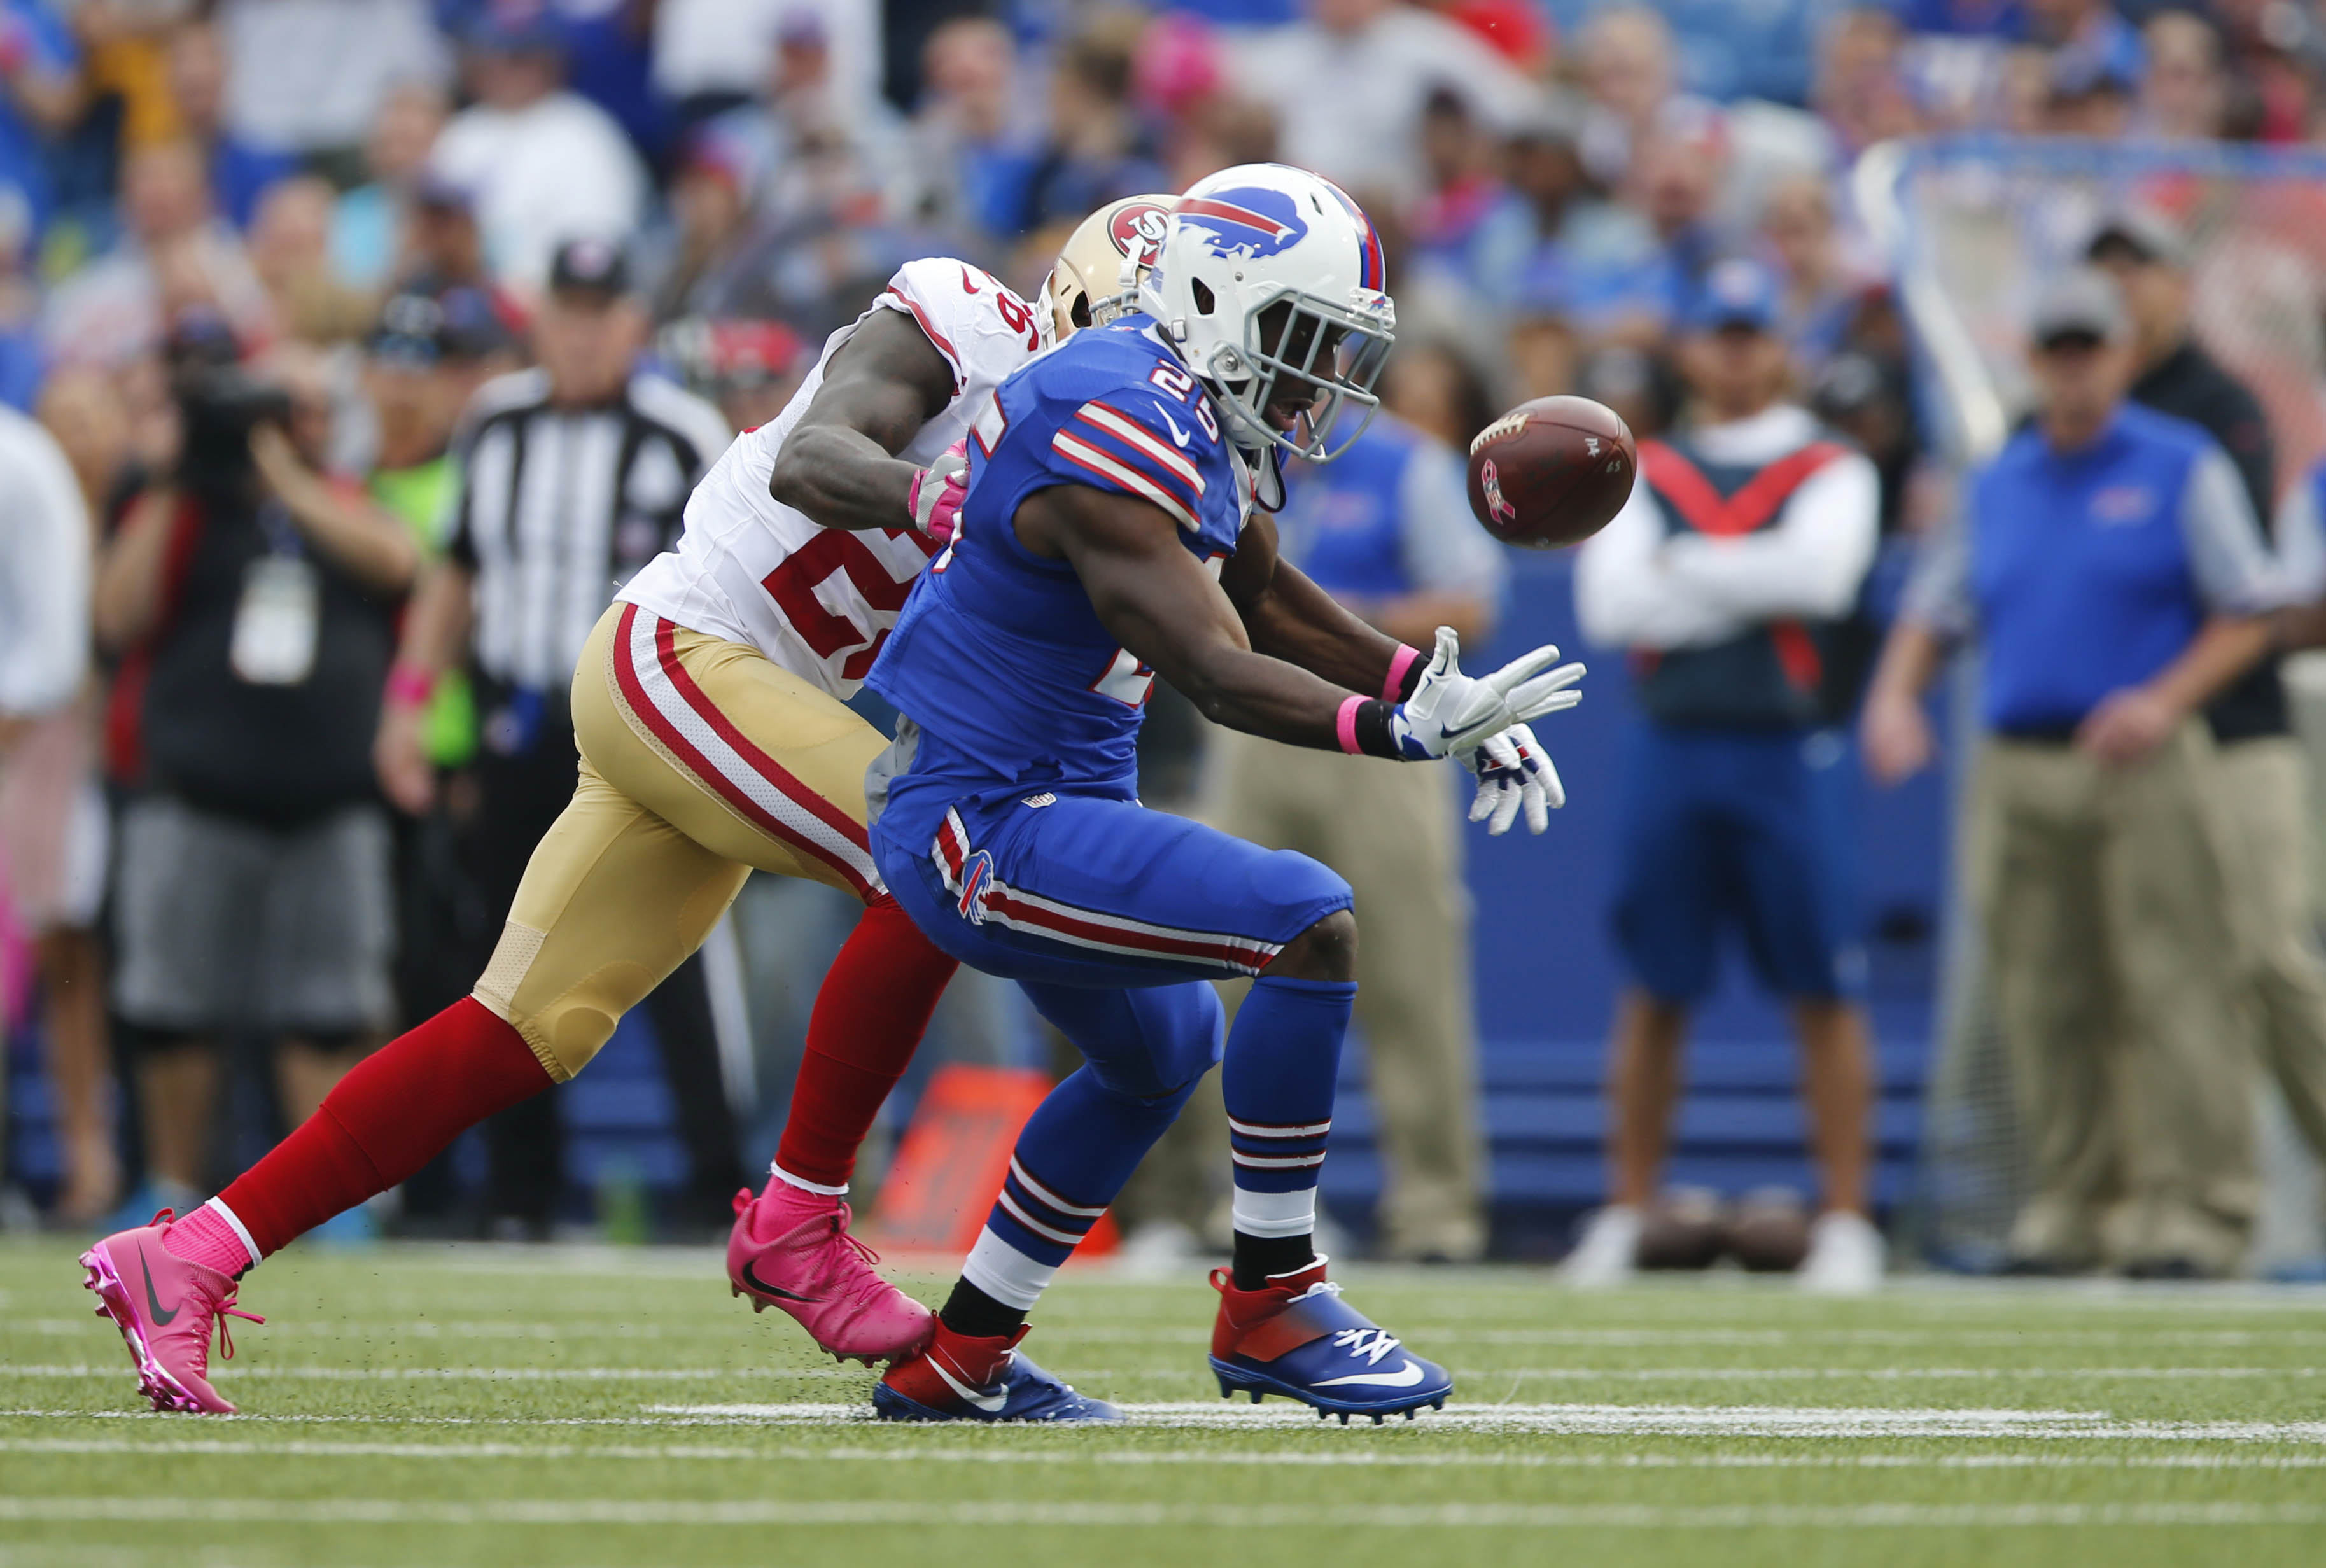 Buffalo Bills running back LeSean McCoy bobbles the ball before recovering on a run against the San Francisco 49ers during the third quarter.   (Mark Mulville/The Buffalo News)